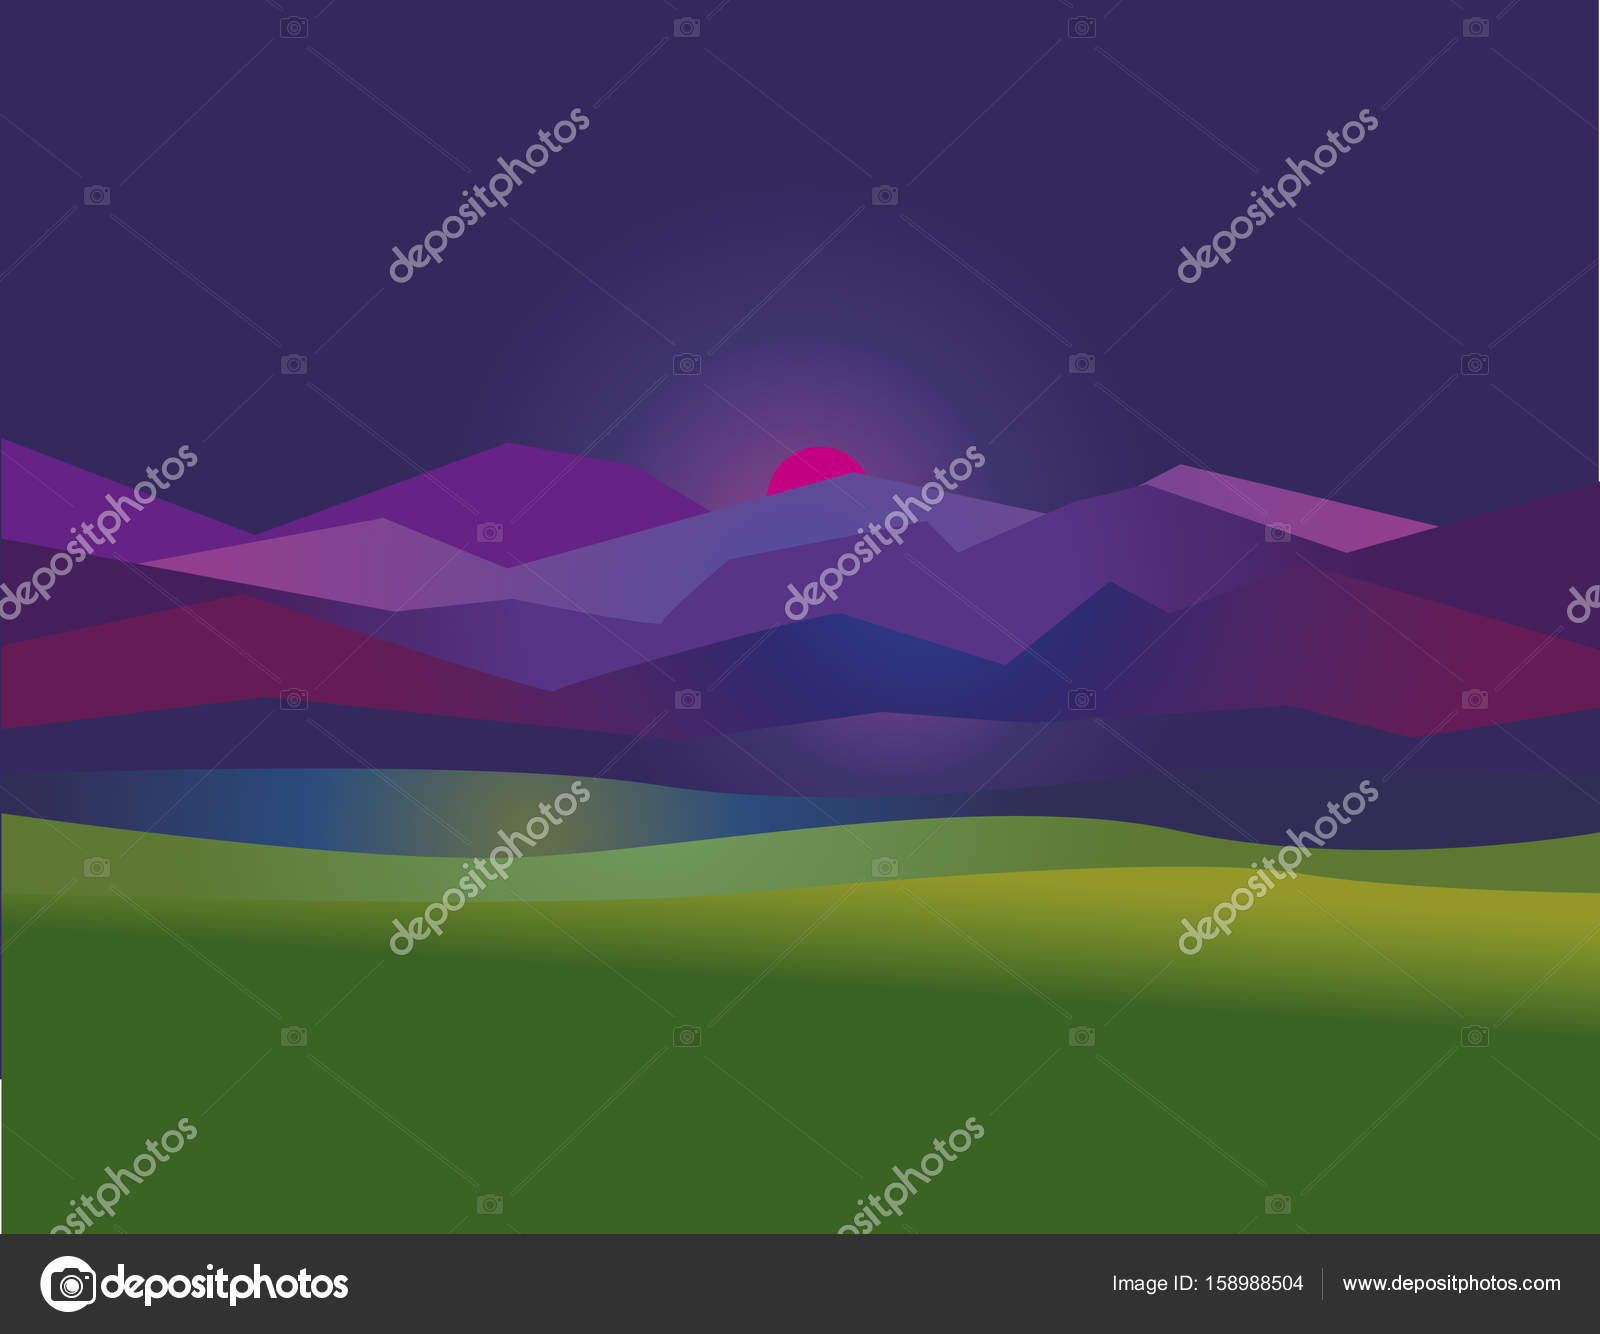 Concept Simple Night Mountain Sunset Landscape Vector Illustration For Web And Print Design Stock